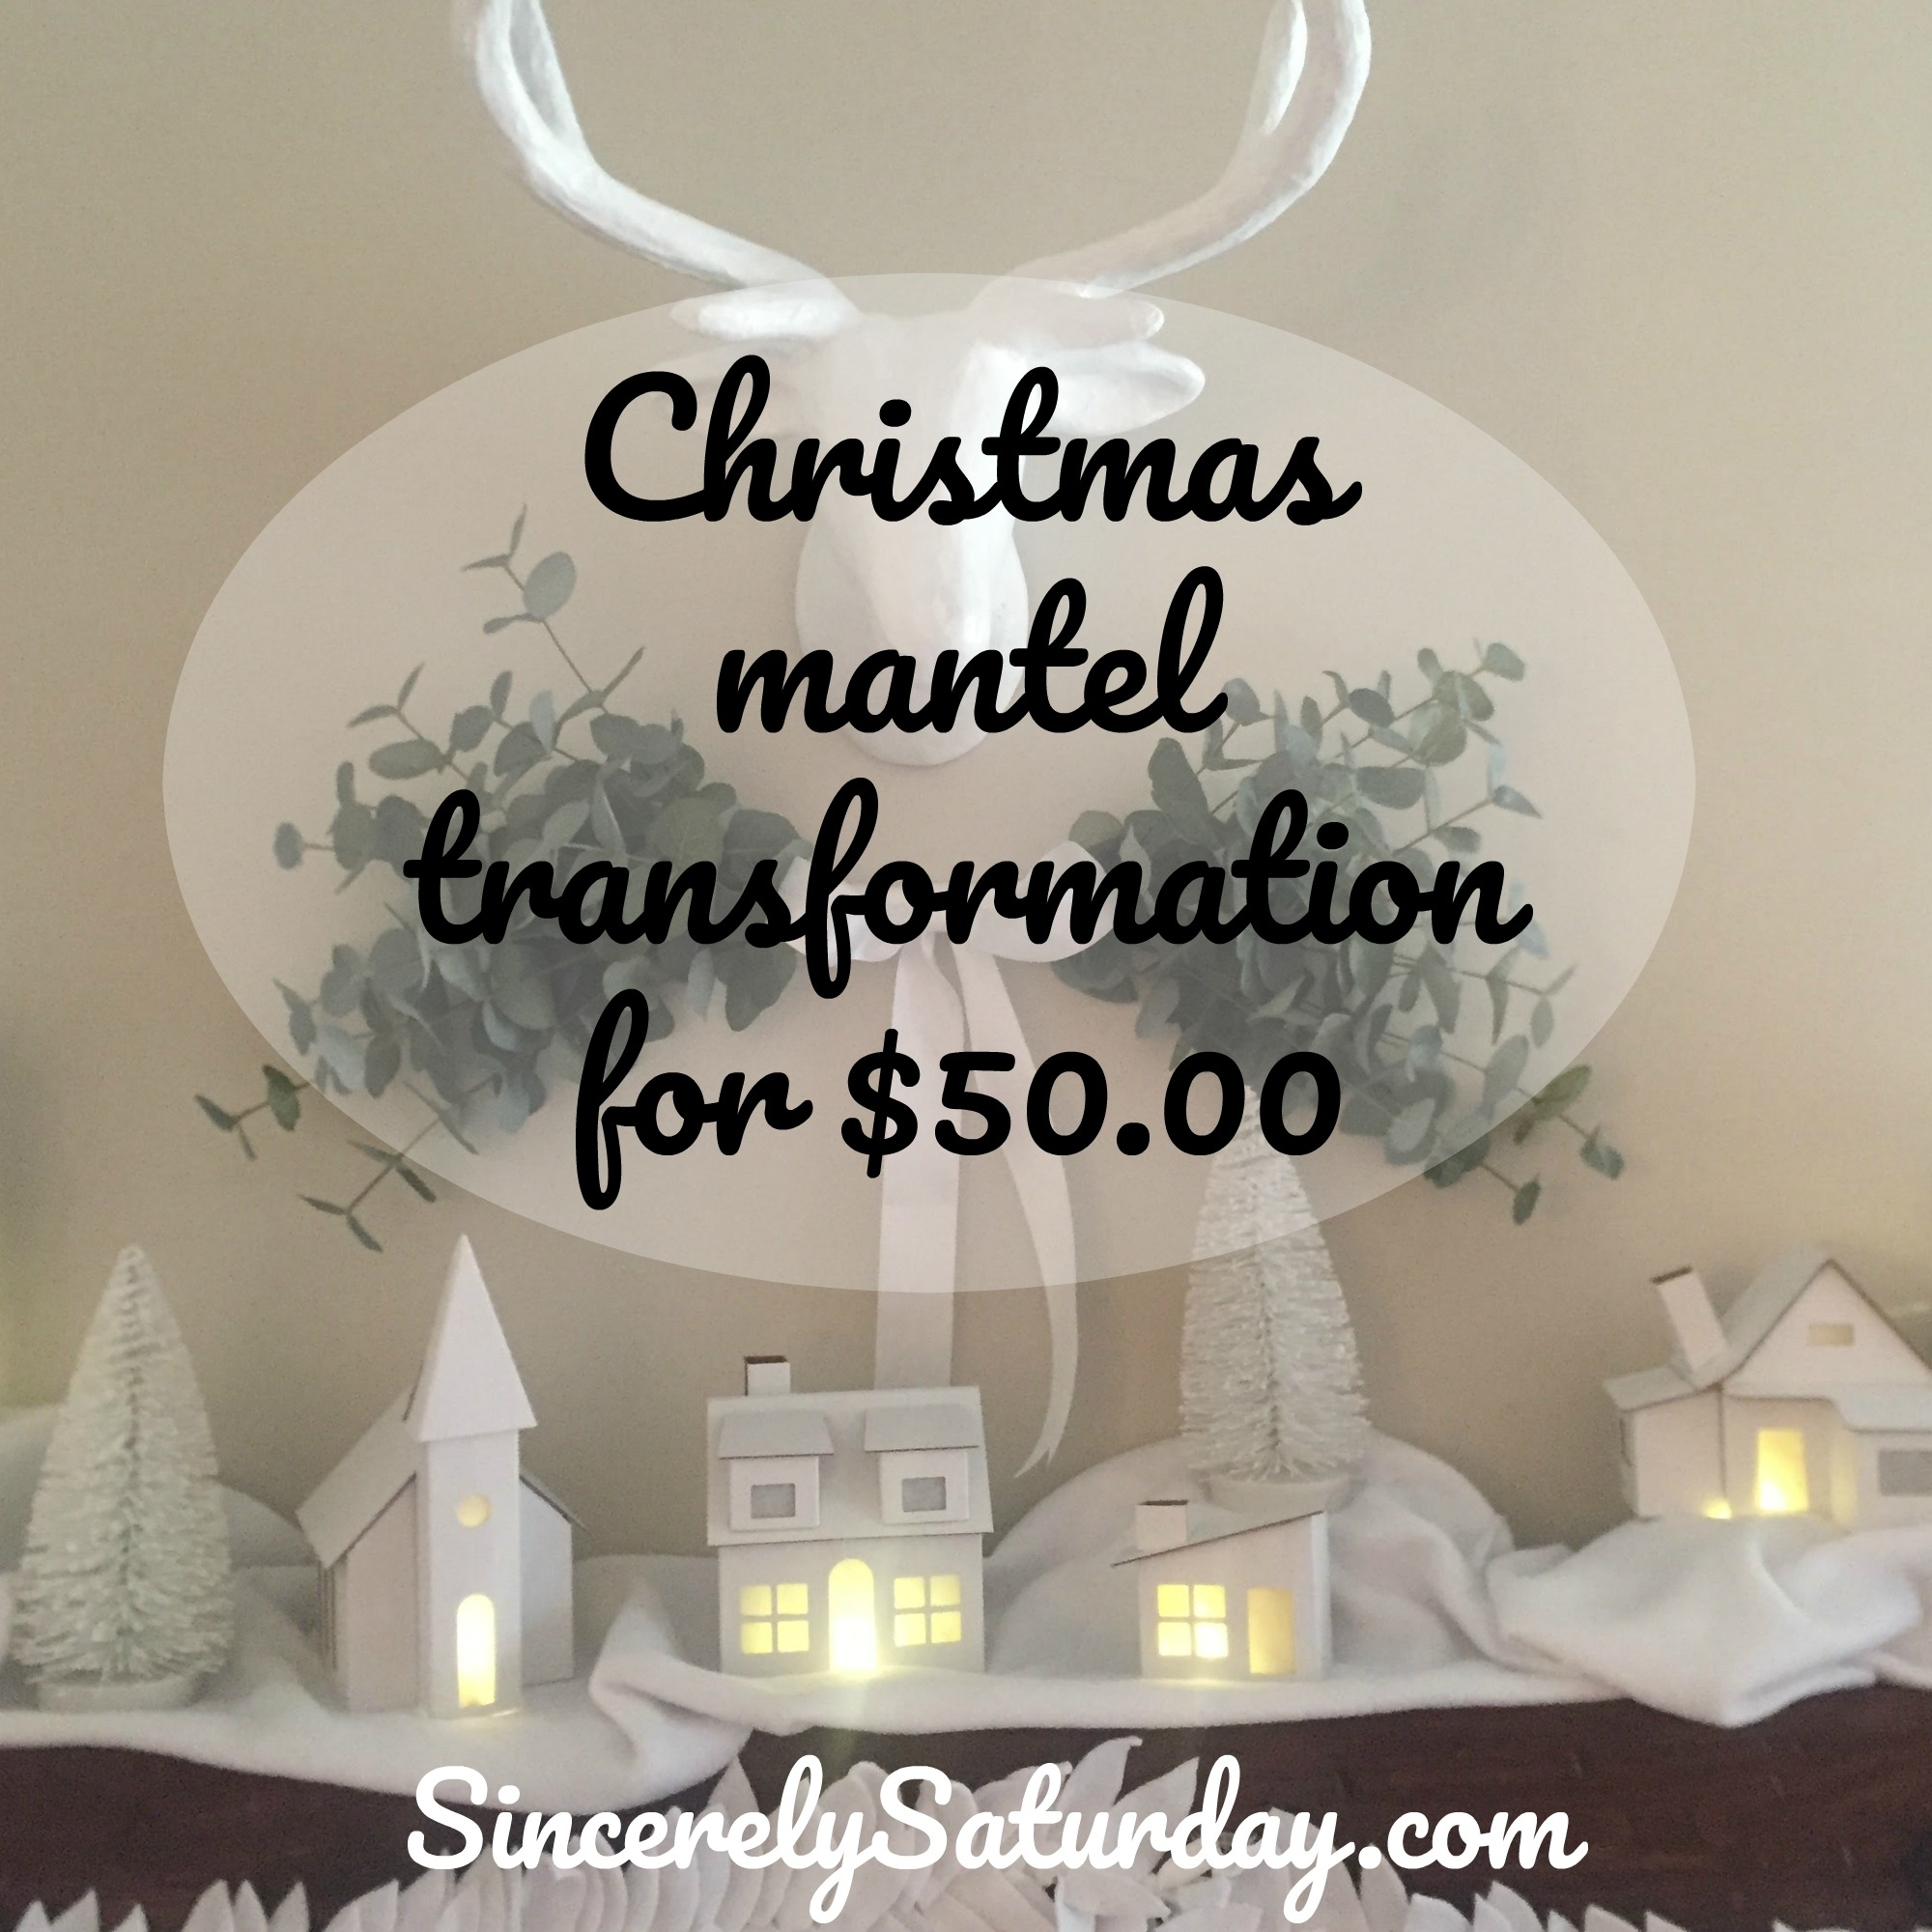 Christmas mantel transformation for $50.00